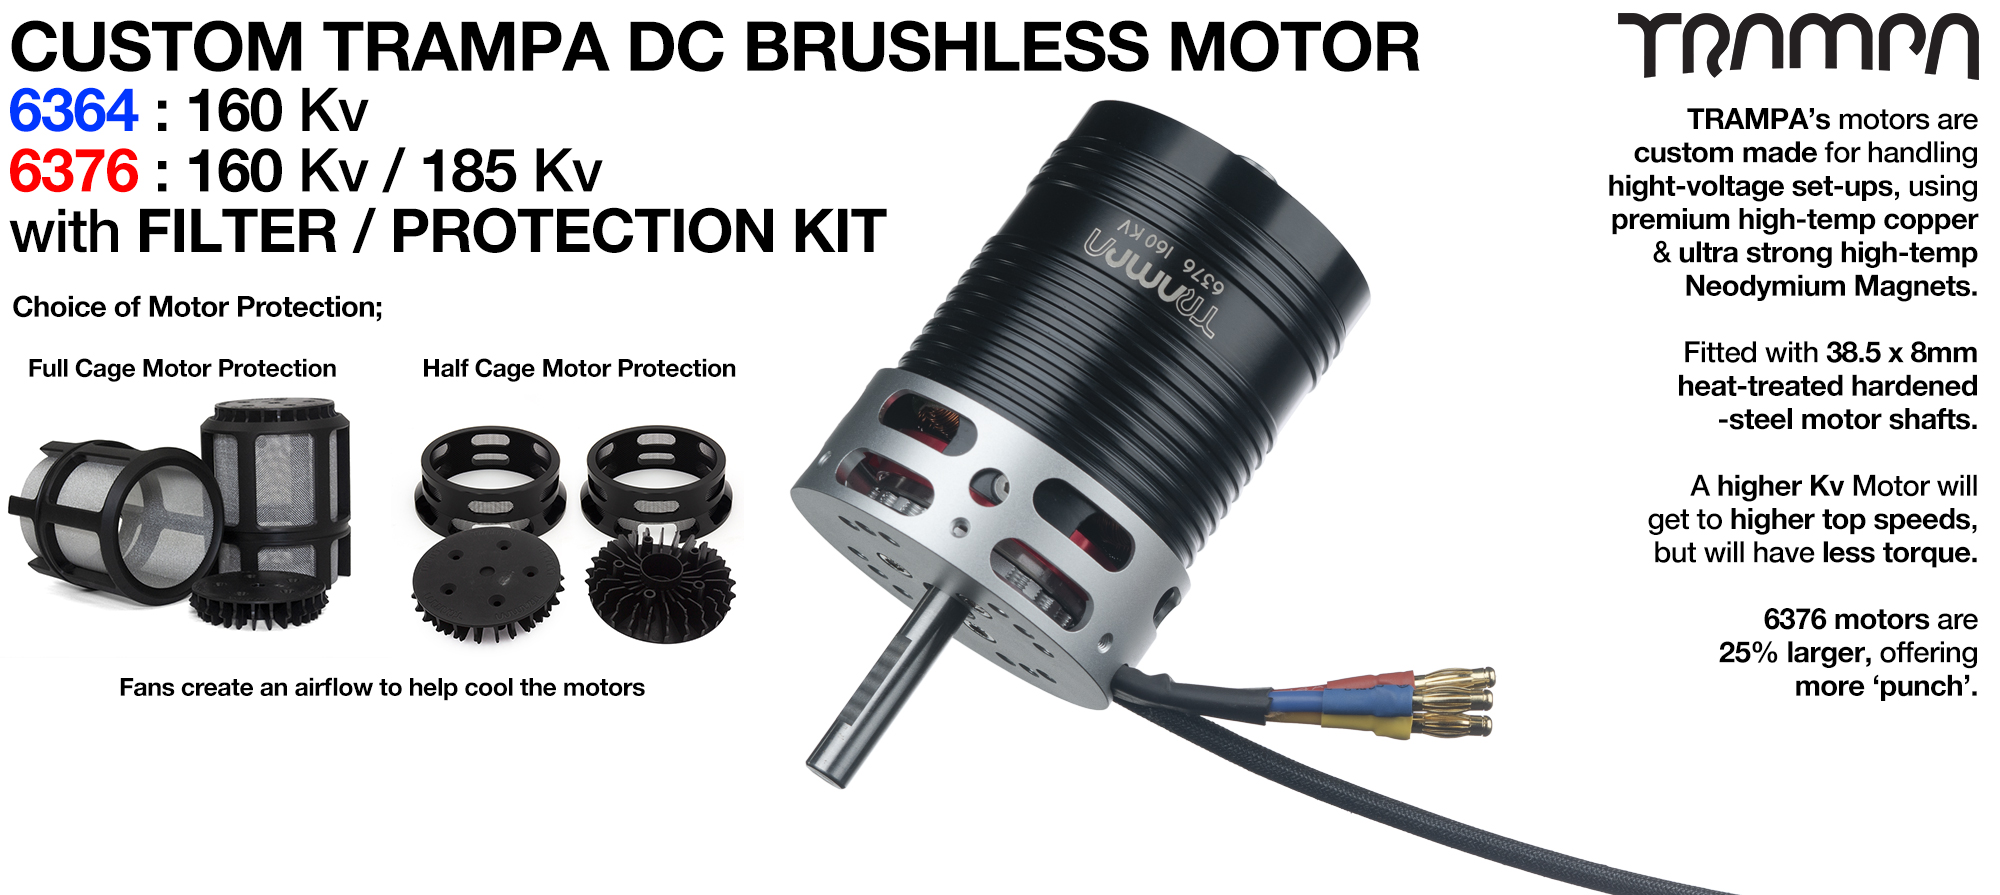 TRAMPA Custom DC Motor with Filters